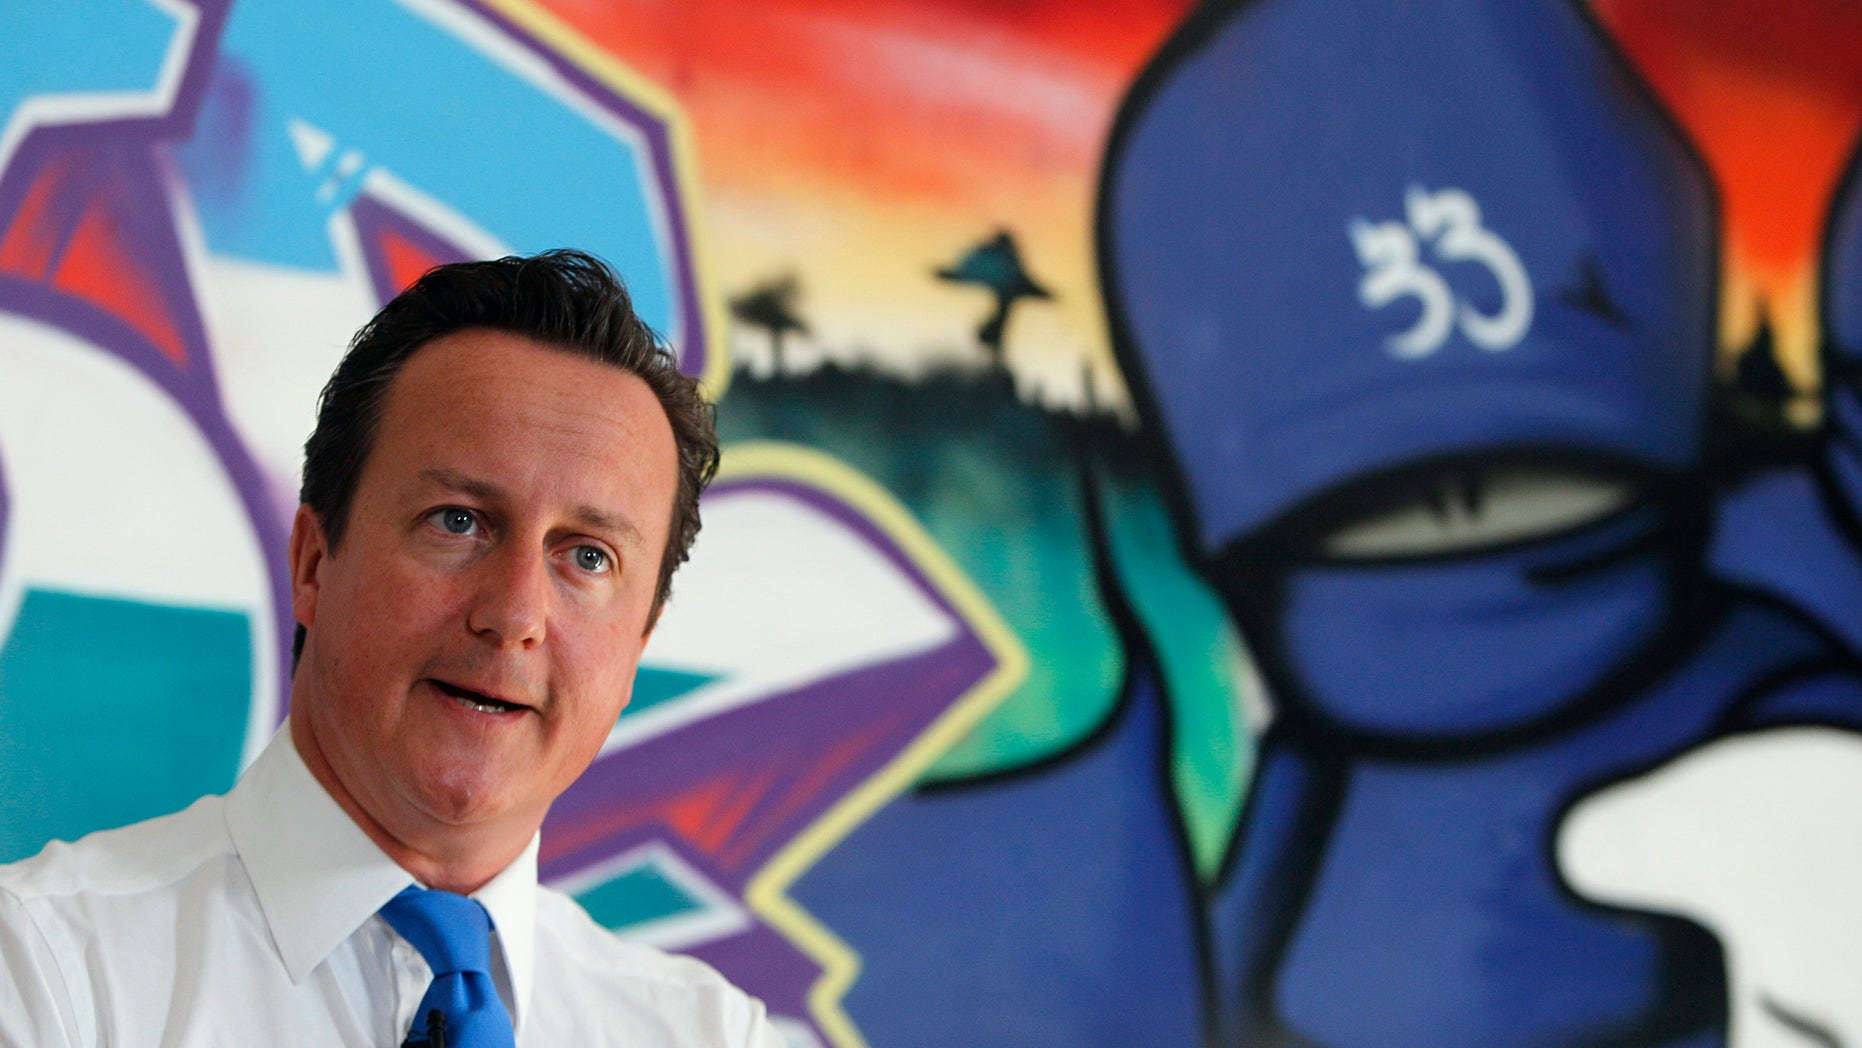 """August 15: Britain's Prime Minister David Cameron speaks at a youth center in Witney, his Parliamentary district in southern England. Britain must confront its """"slow-motion moral collapse"""" Cameron declared following four days of riots that left five people dead, thousands facing criminal charges and at least 200 million pounds ($326 million) in property losses."""